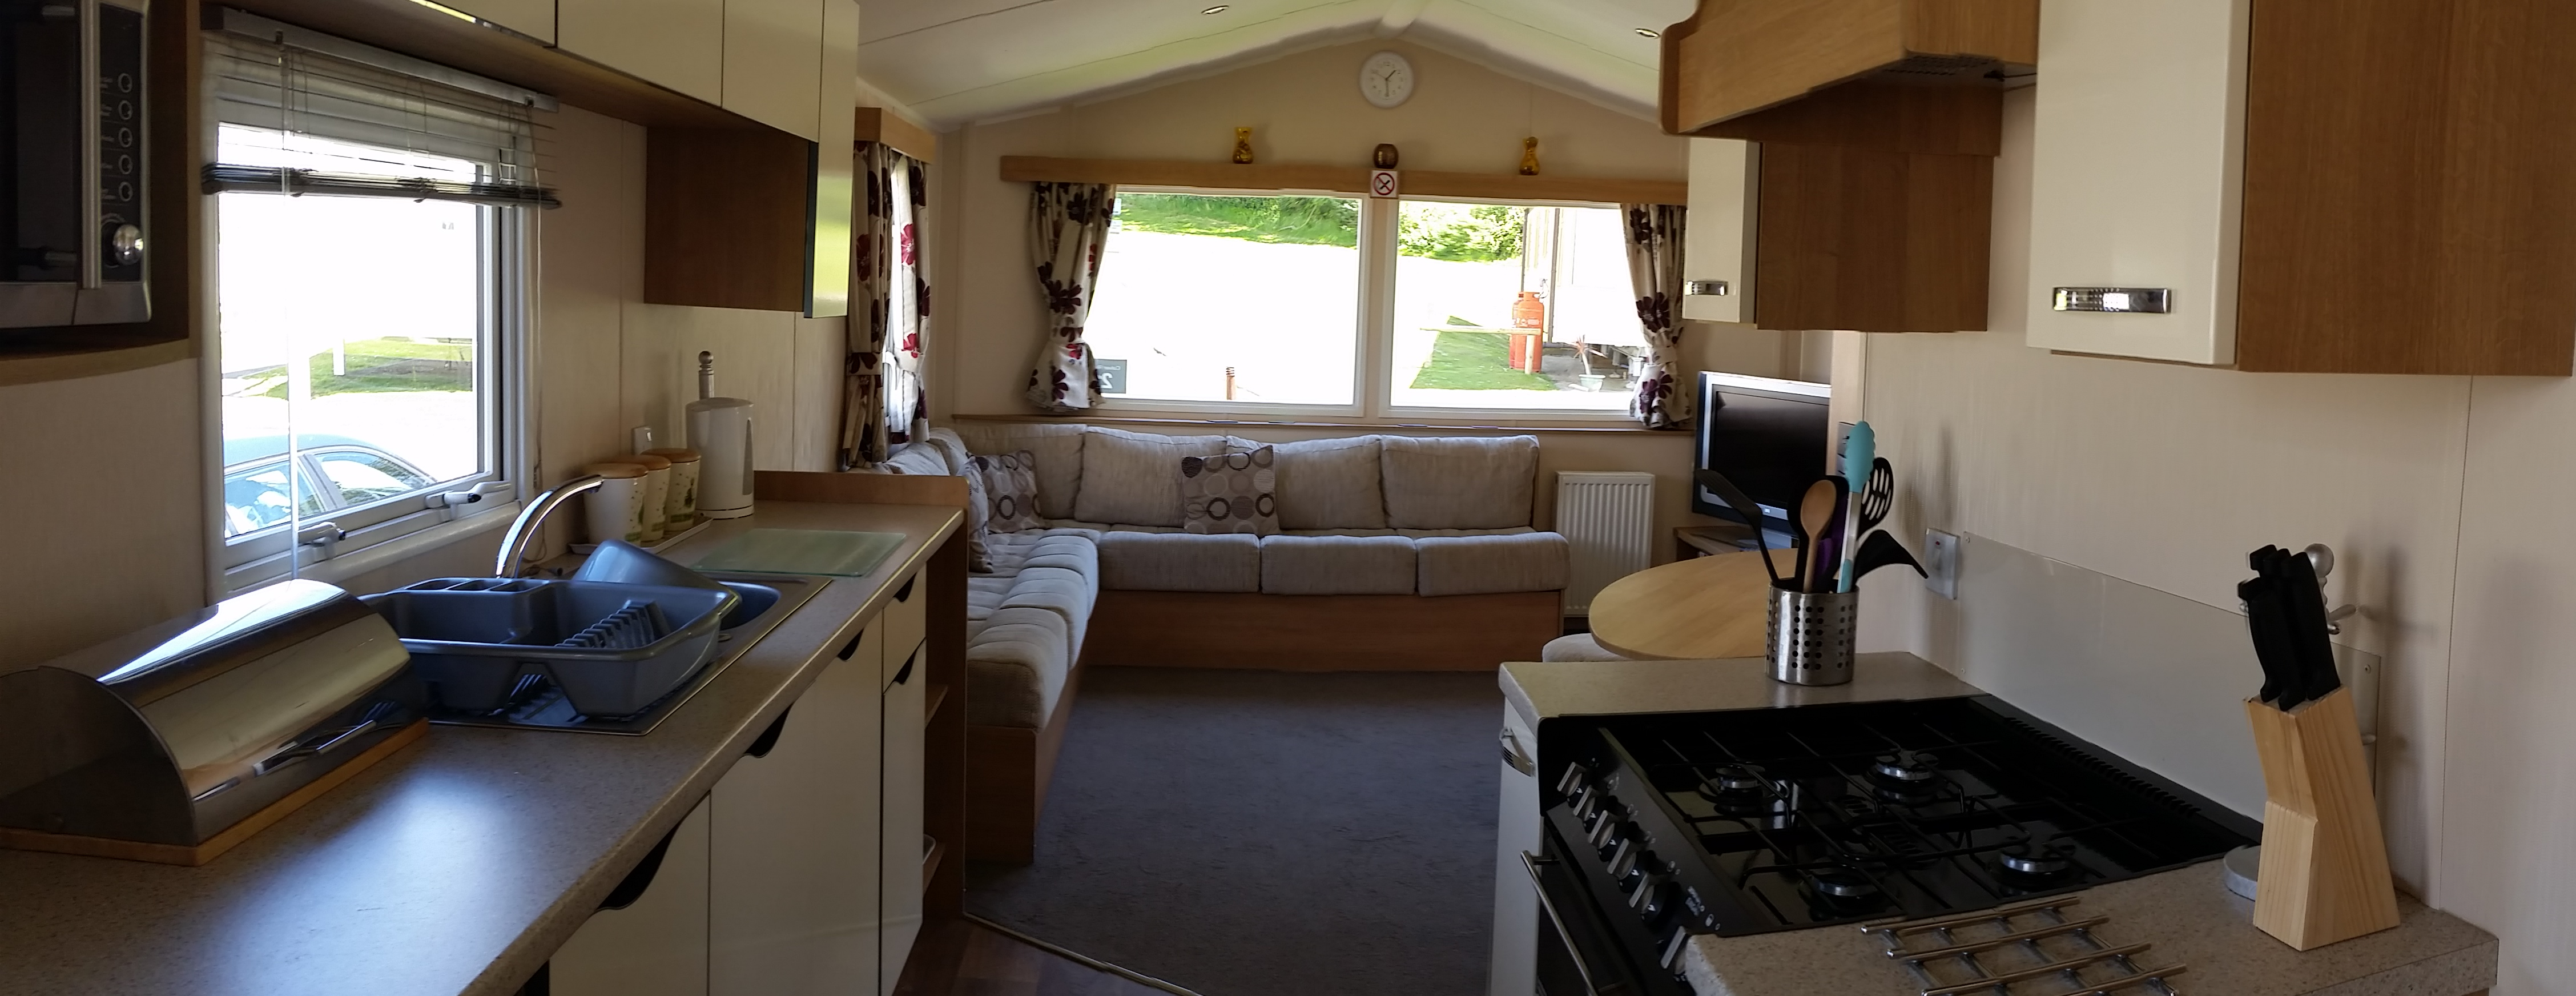 *137* Whitecliff Bay Holiday Park, Isle of Wight